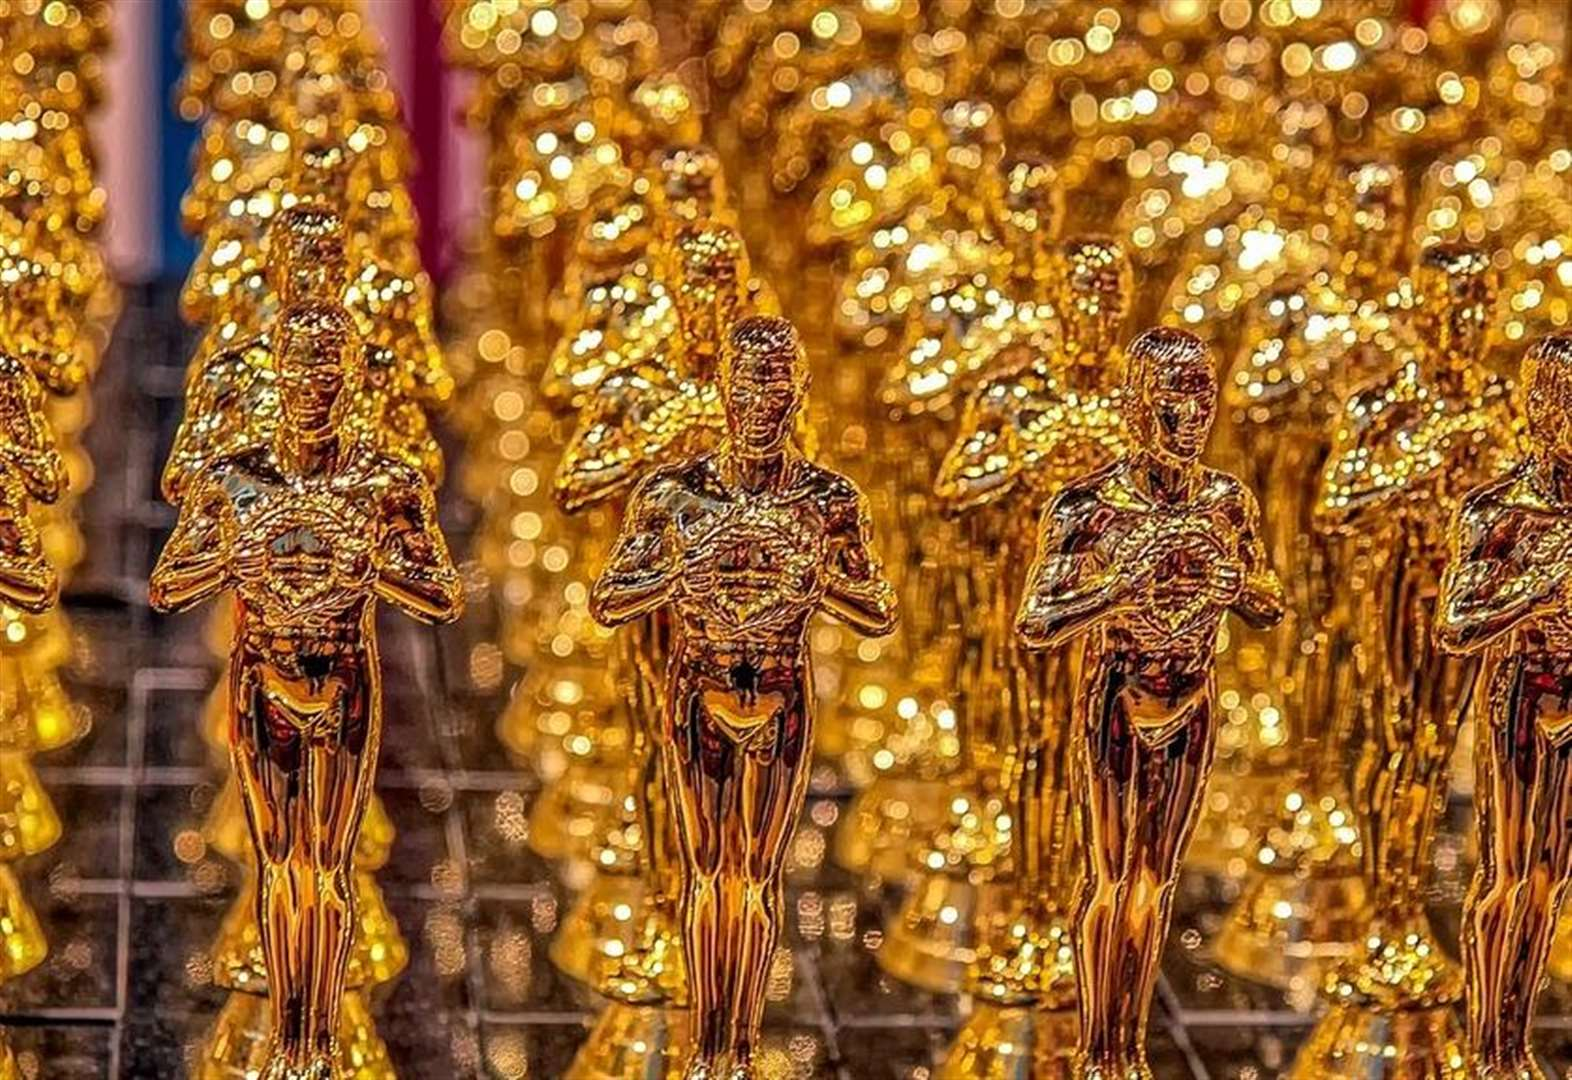 Cinema ticket postcode lottery for Oscar favourites